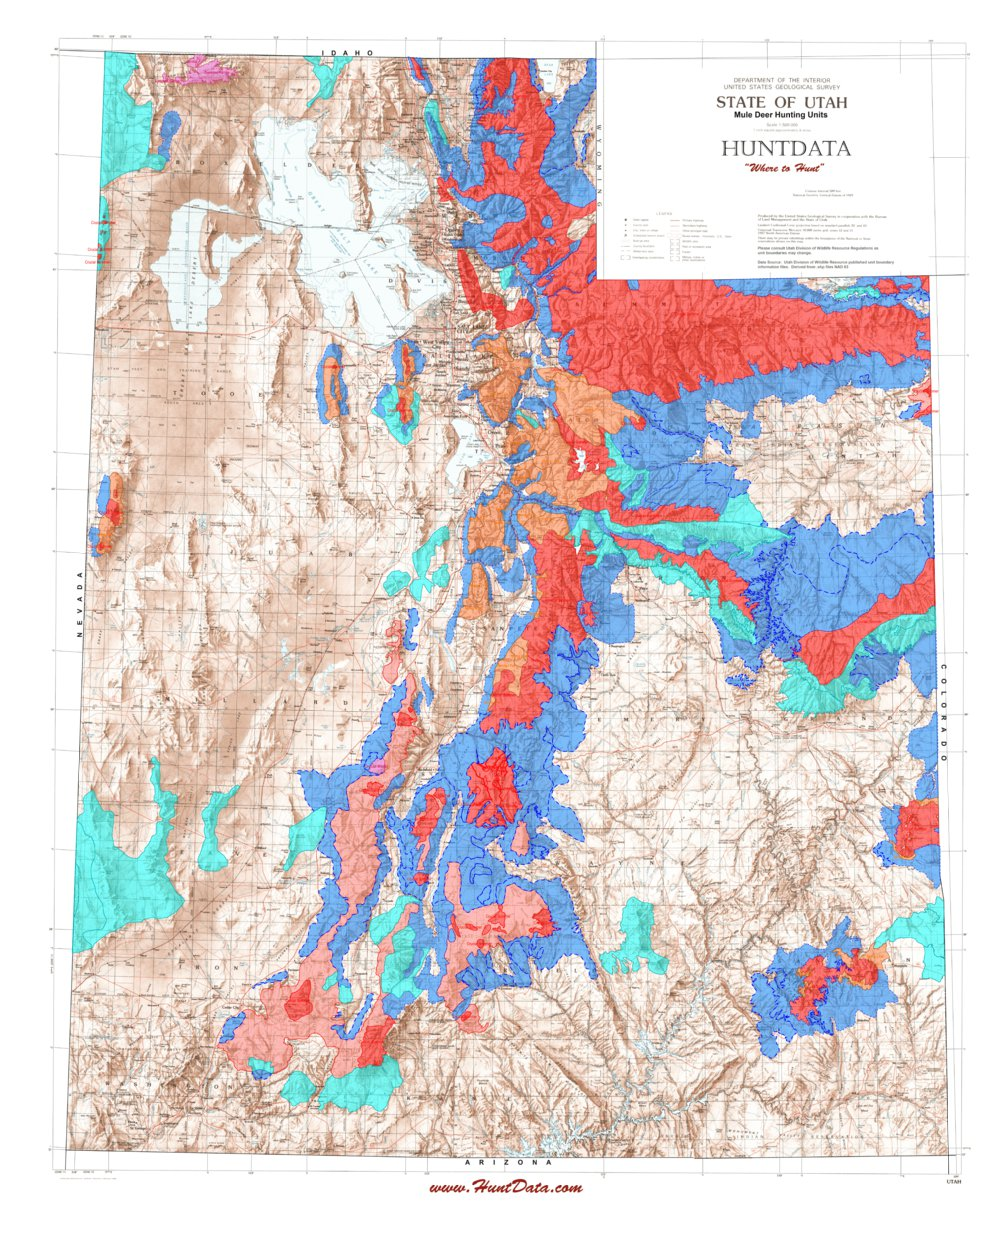 Ut State Map.Utah State Map With Elk Unit Boundary Overlays Huntdata Llc